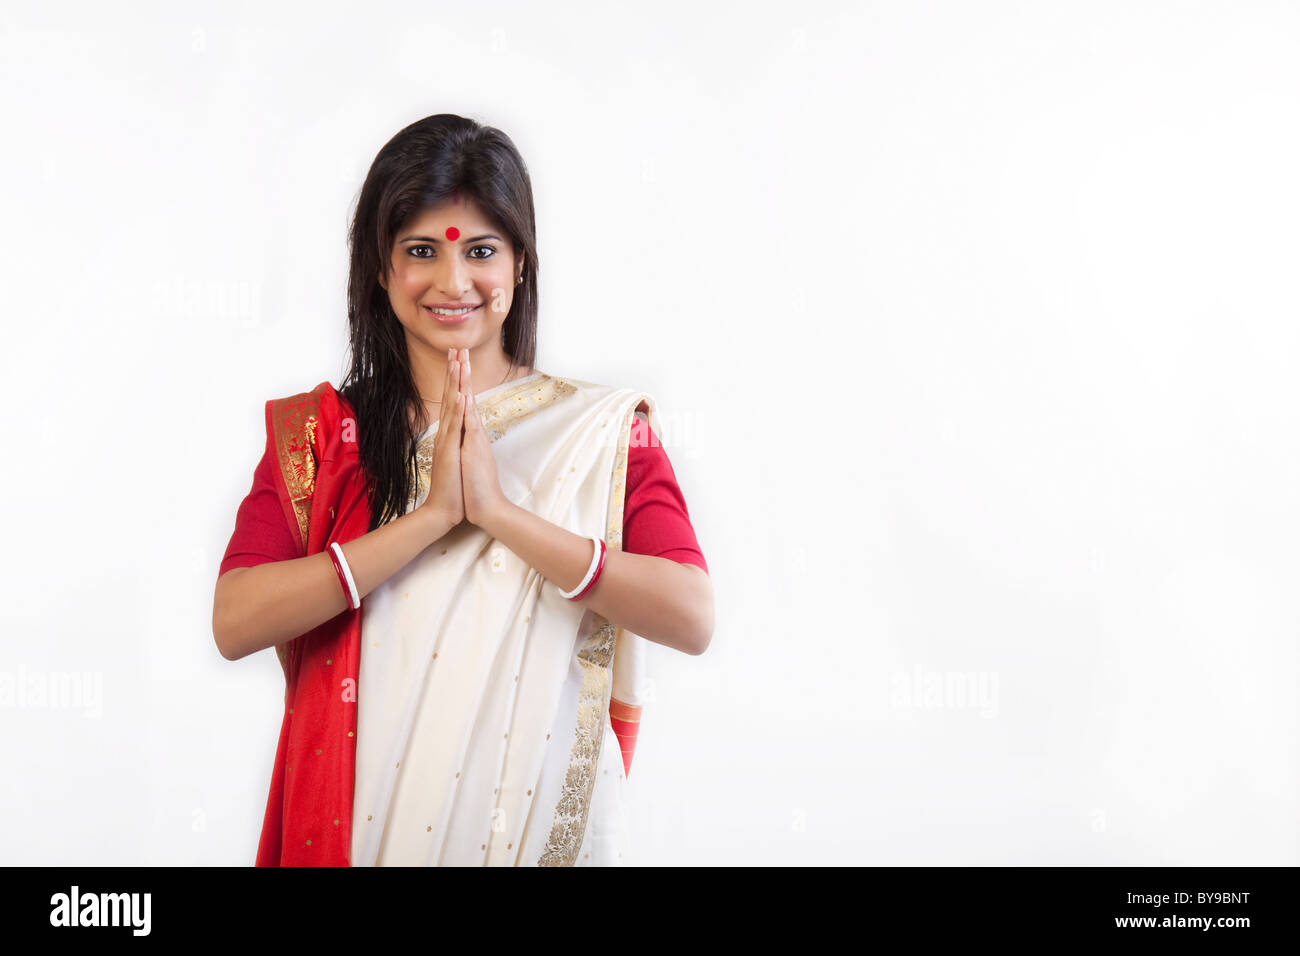 Namaskaar Stock Photos & Namaskaar Stock Images - Alamy